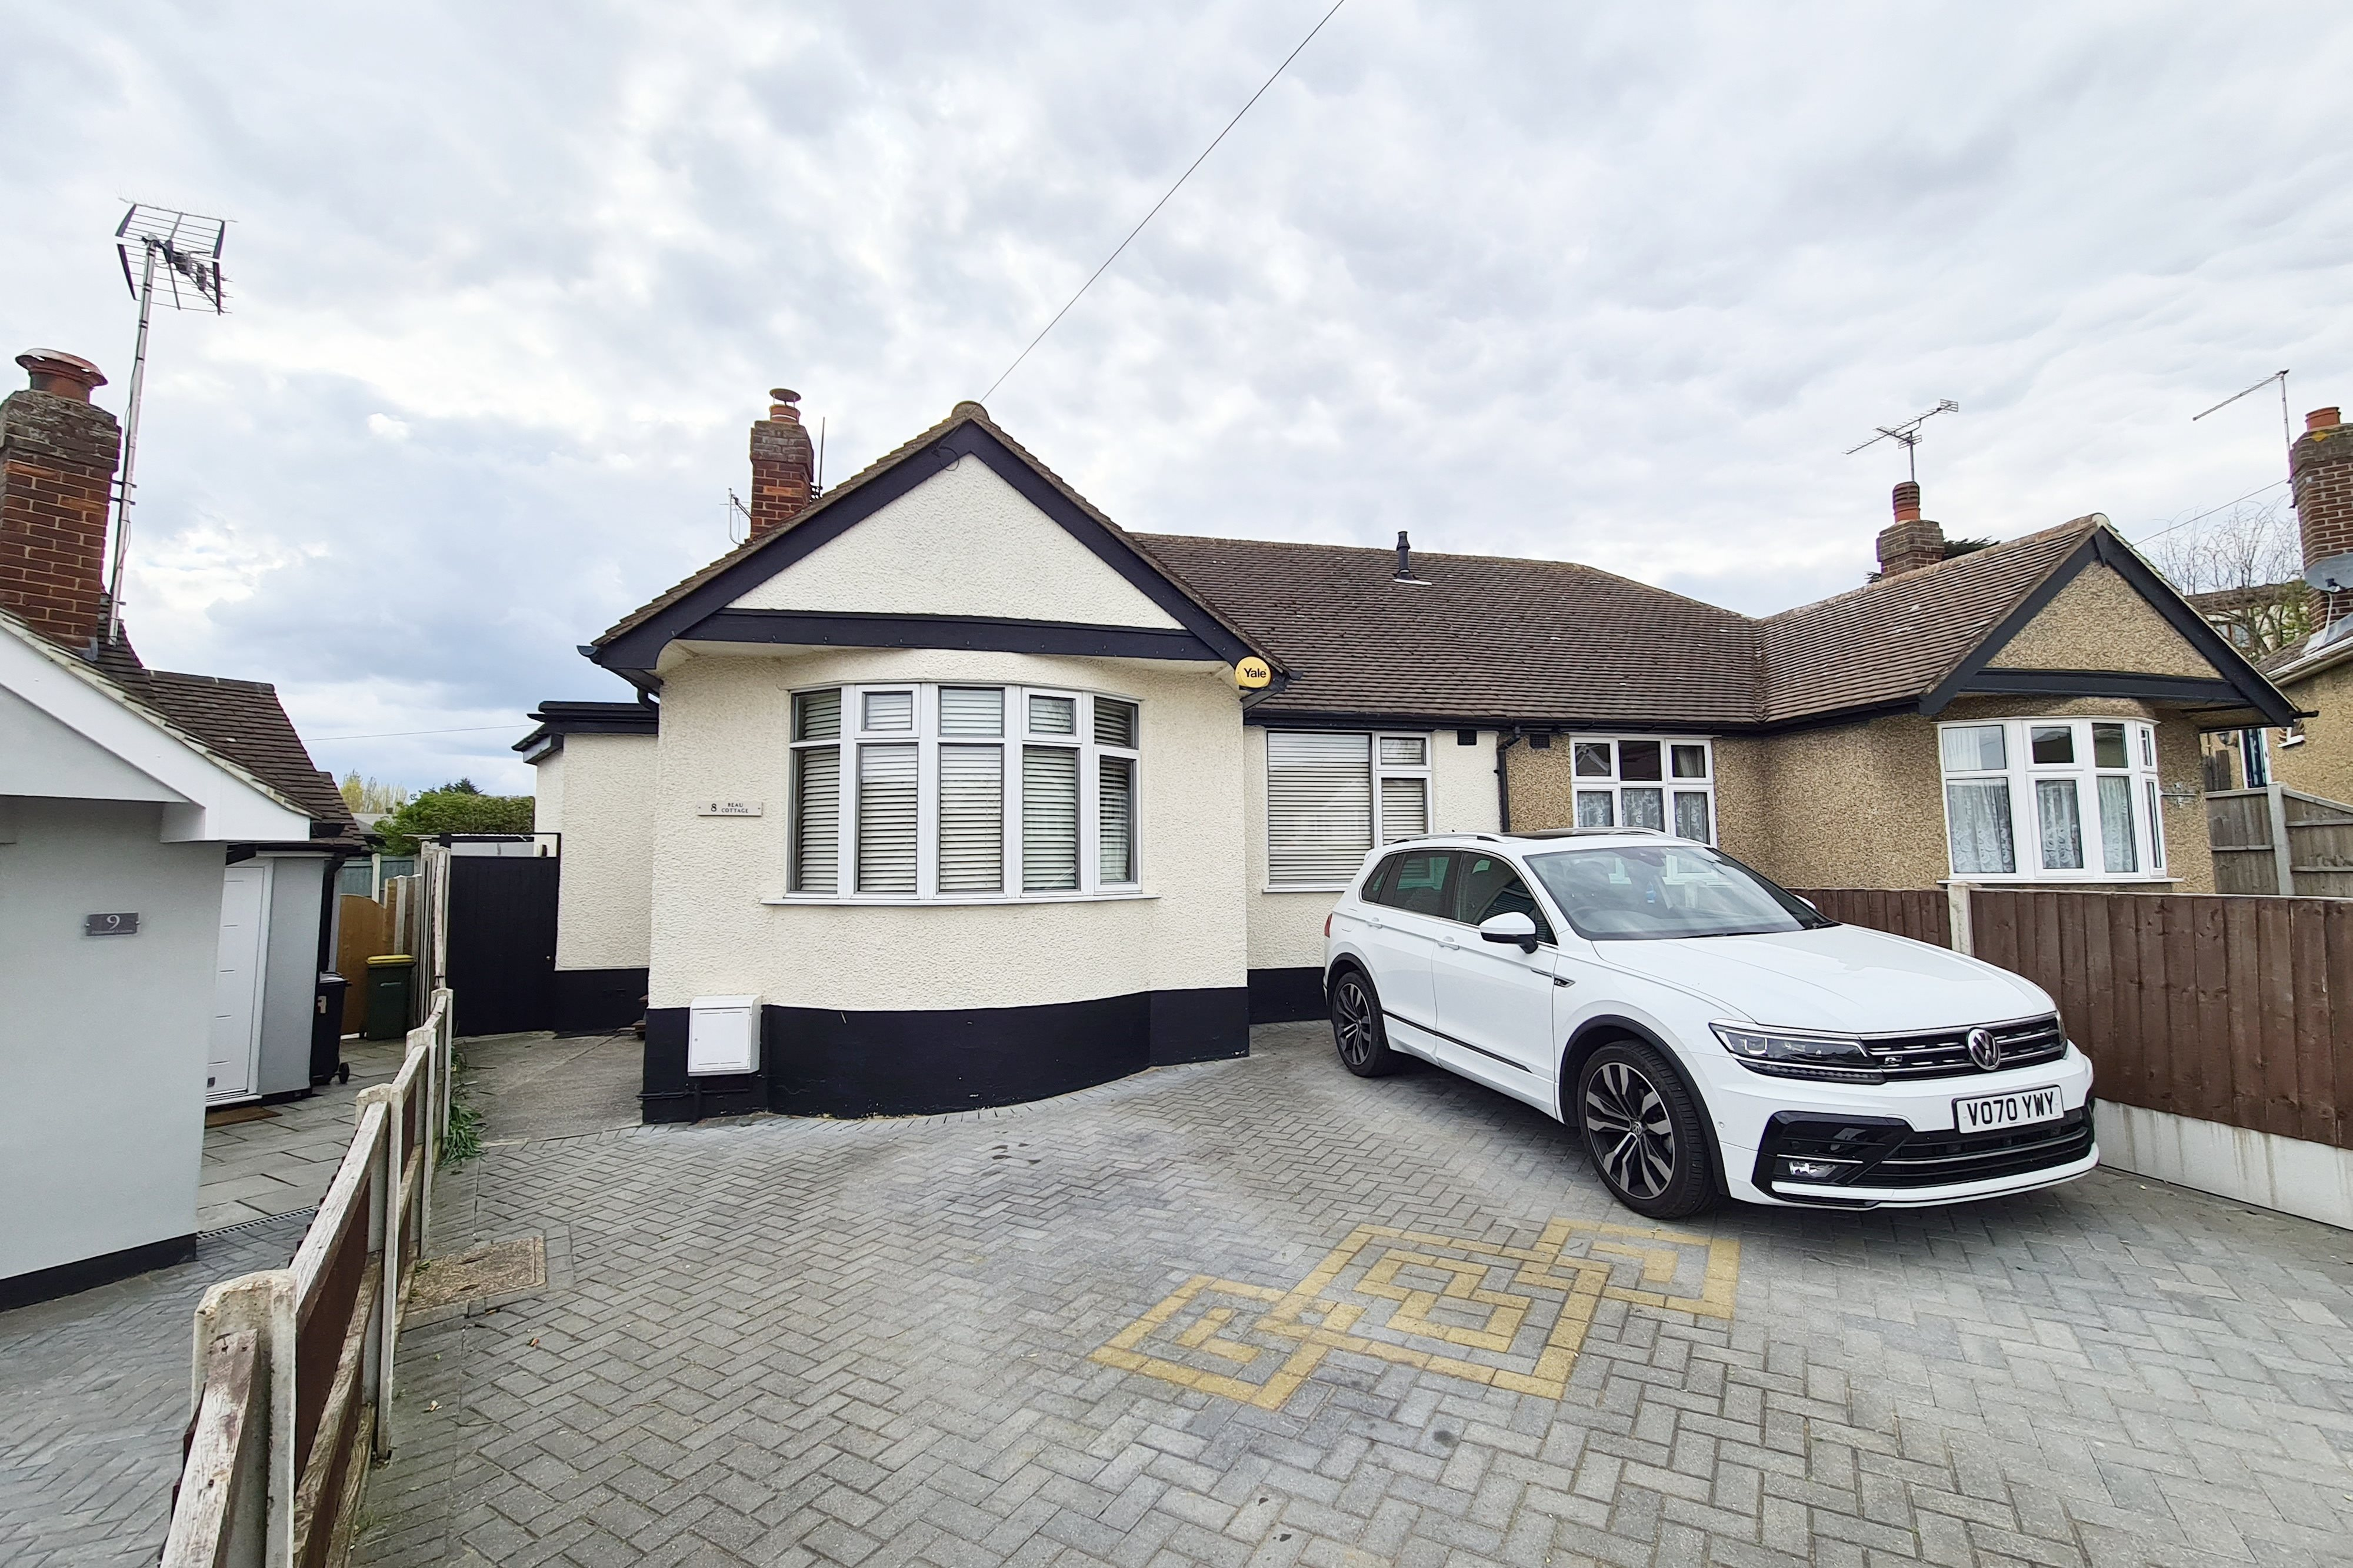 3 bed semi-detached bungalow to rent in Humber Close, Rayleigh - Property Image 1